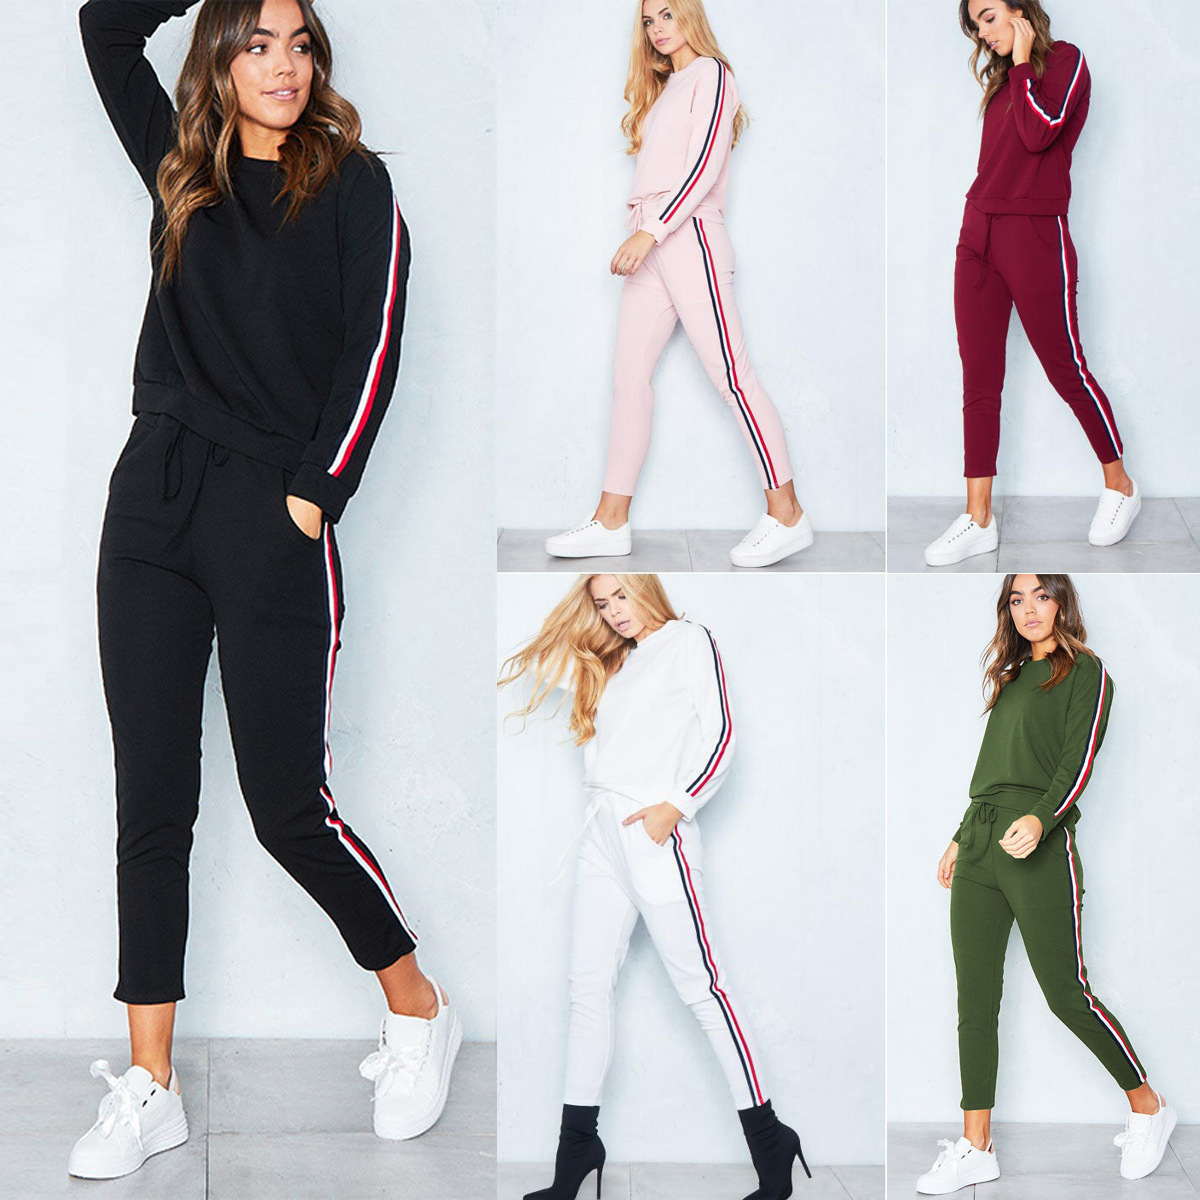 Striped Solid Fashion Suit Set 2020 Women Tracksuit Two-piece Sport Style Outfit Jogging Sweatshirt Fitness Lounge Sportwear